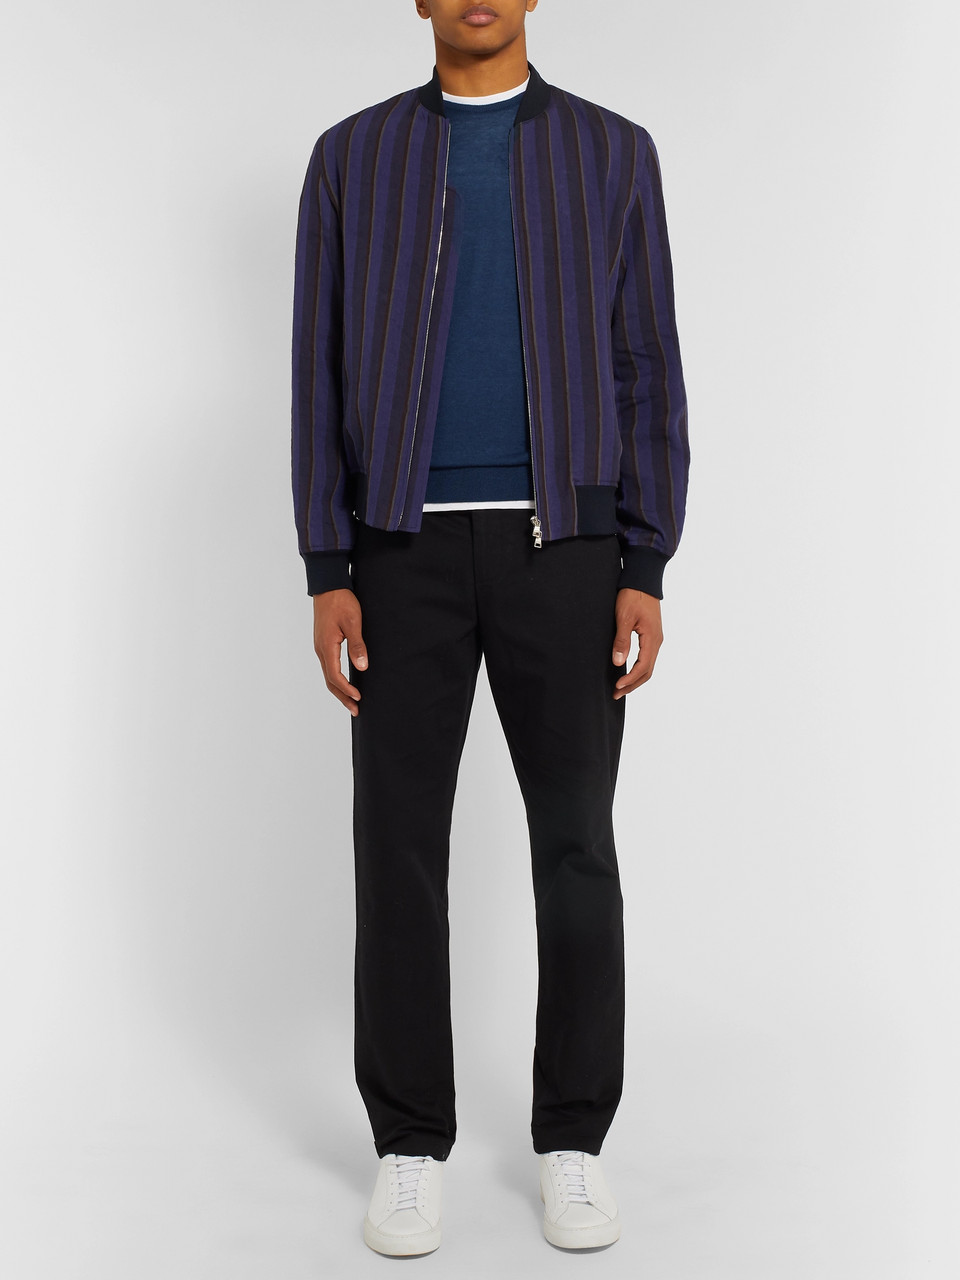 John Smedley Theon Slim-Fit Cotton and Cashmere-Blend Sweater